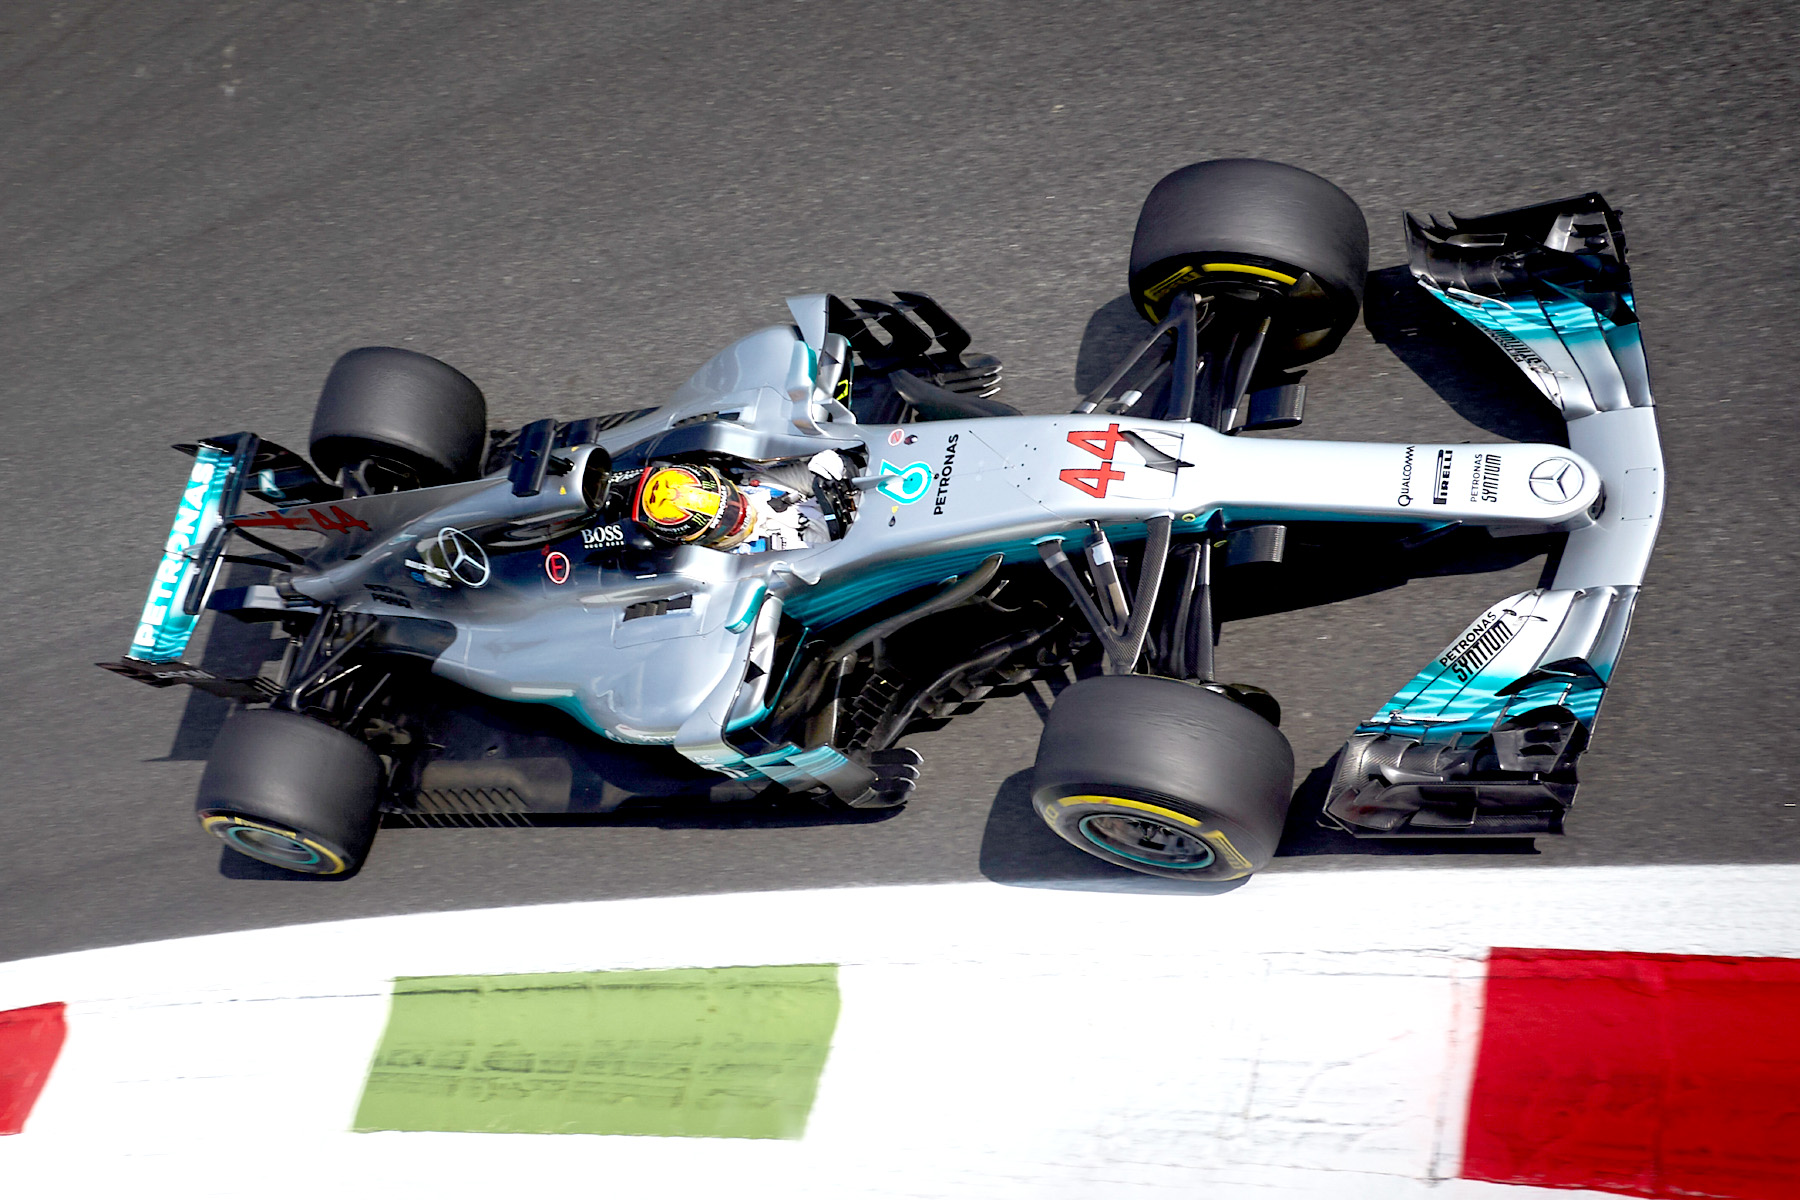 Lewis Hamilton on the circuit at the Italian Grand Prix.